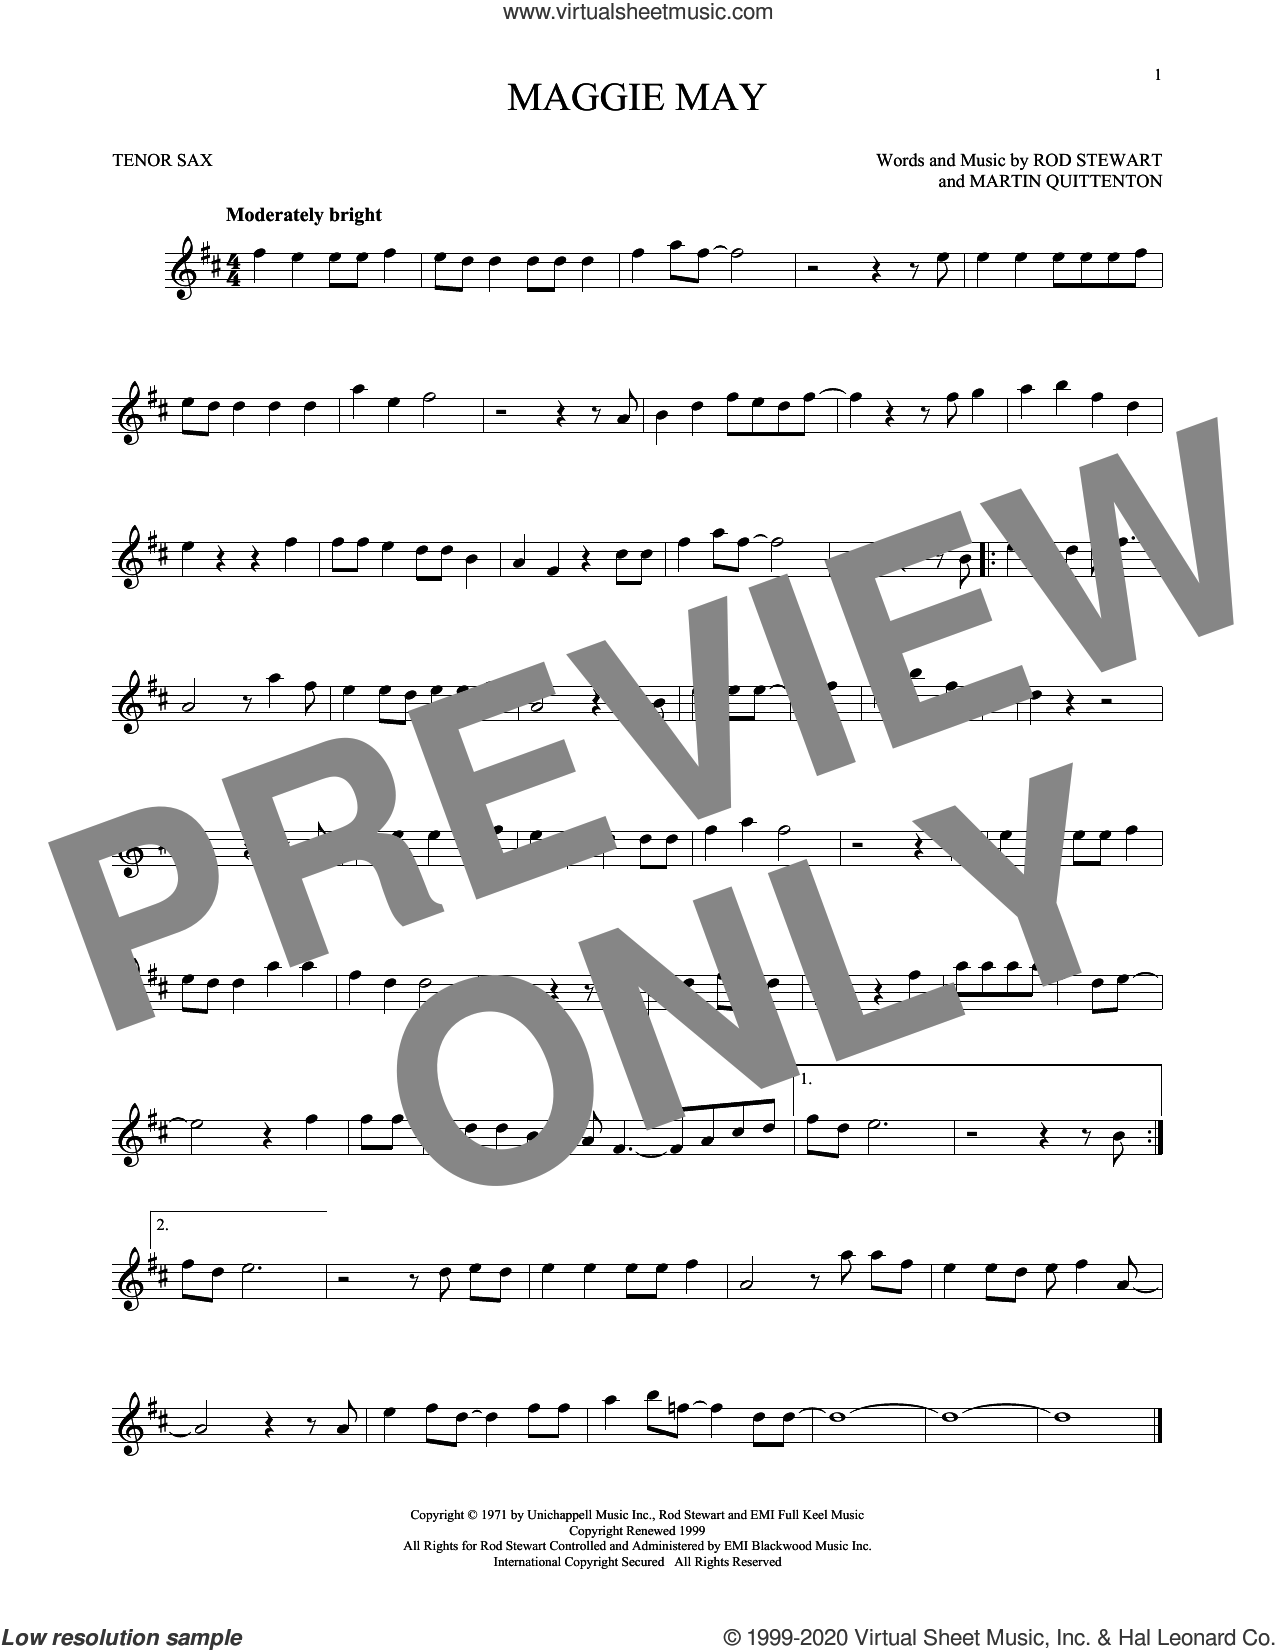 Maggie May sheet music for tenor saxophone solo by Rod Stewart and Martin Quittenton, intermediate skill level